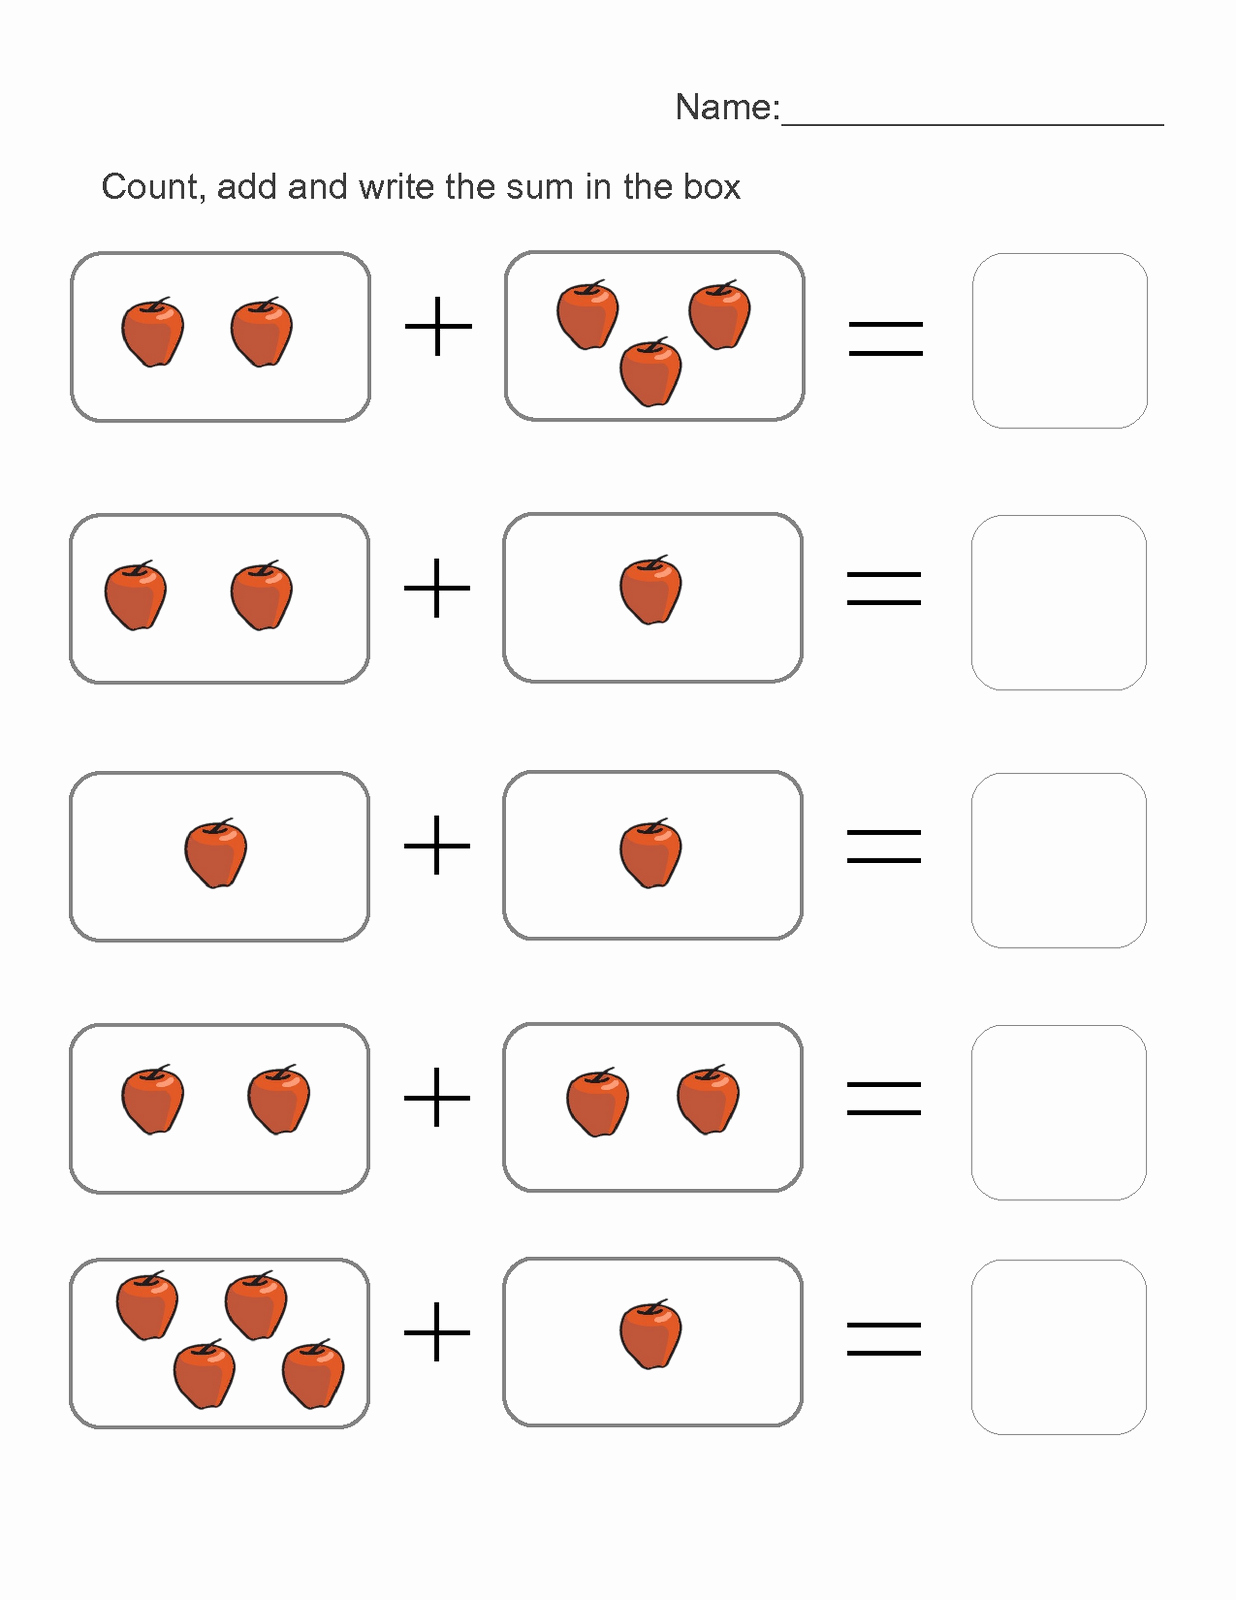 Kindergarten Math Sheets or Picture Math Worksheets to Print